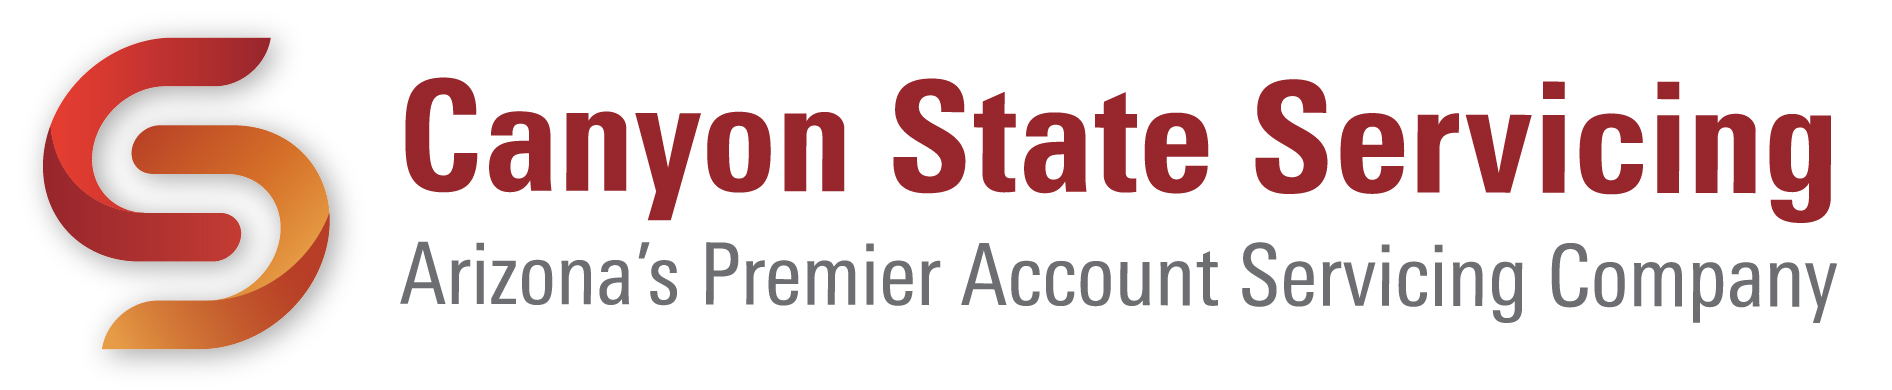 canyon state servicing branding